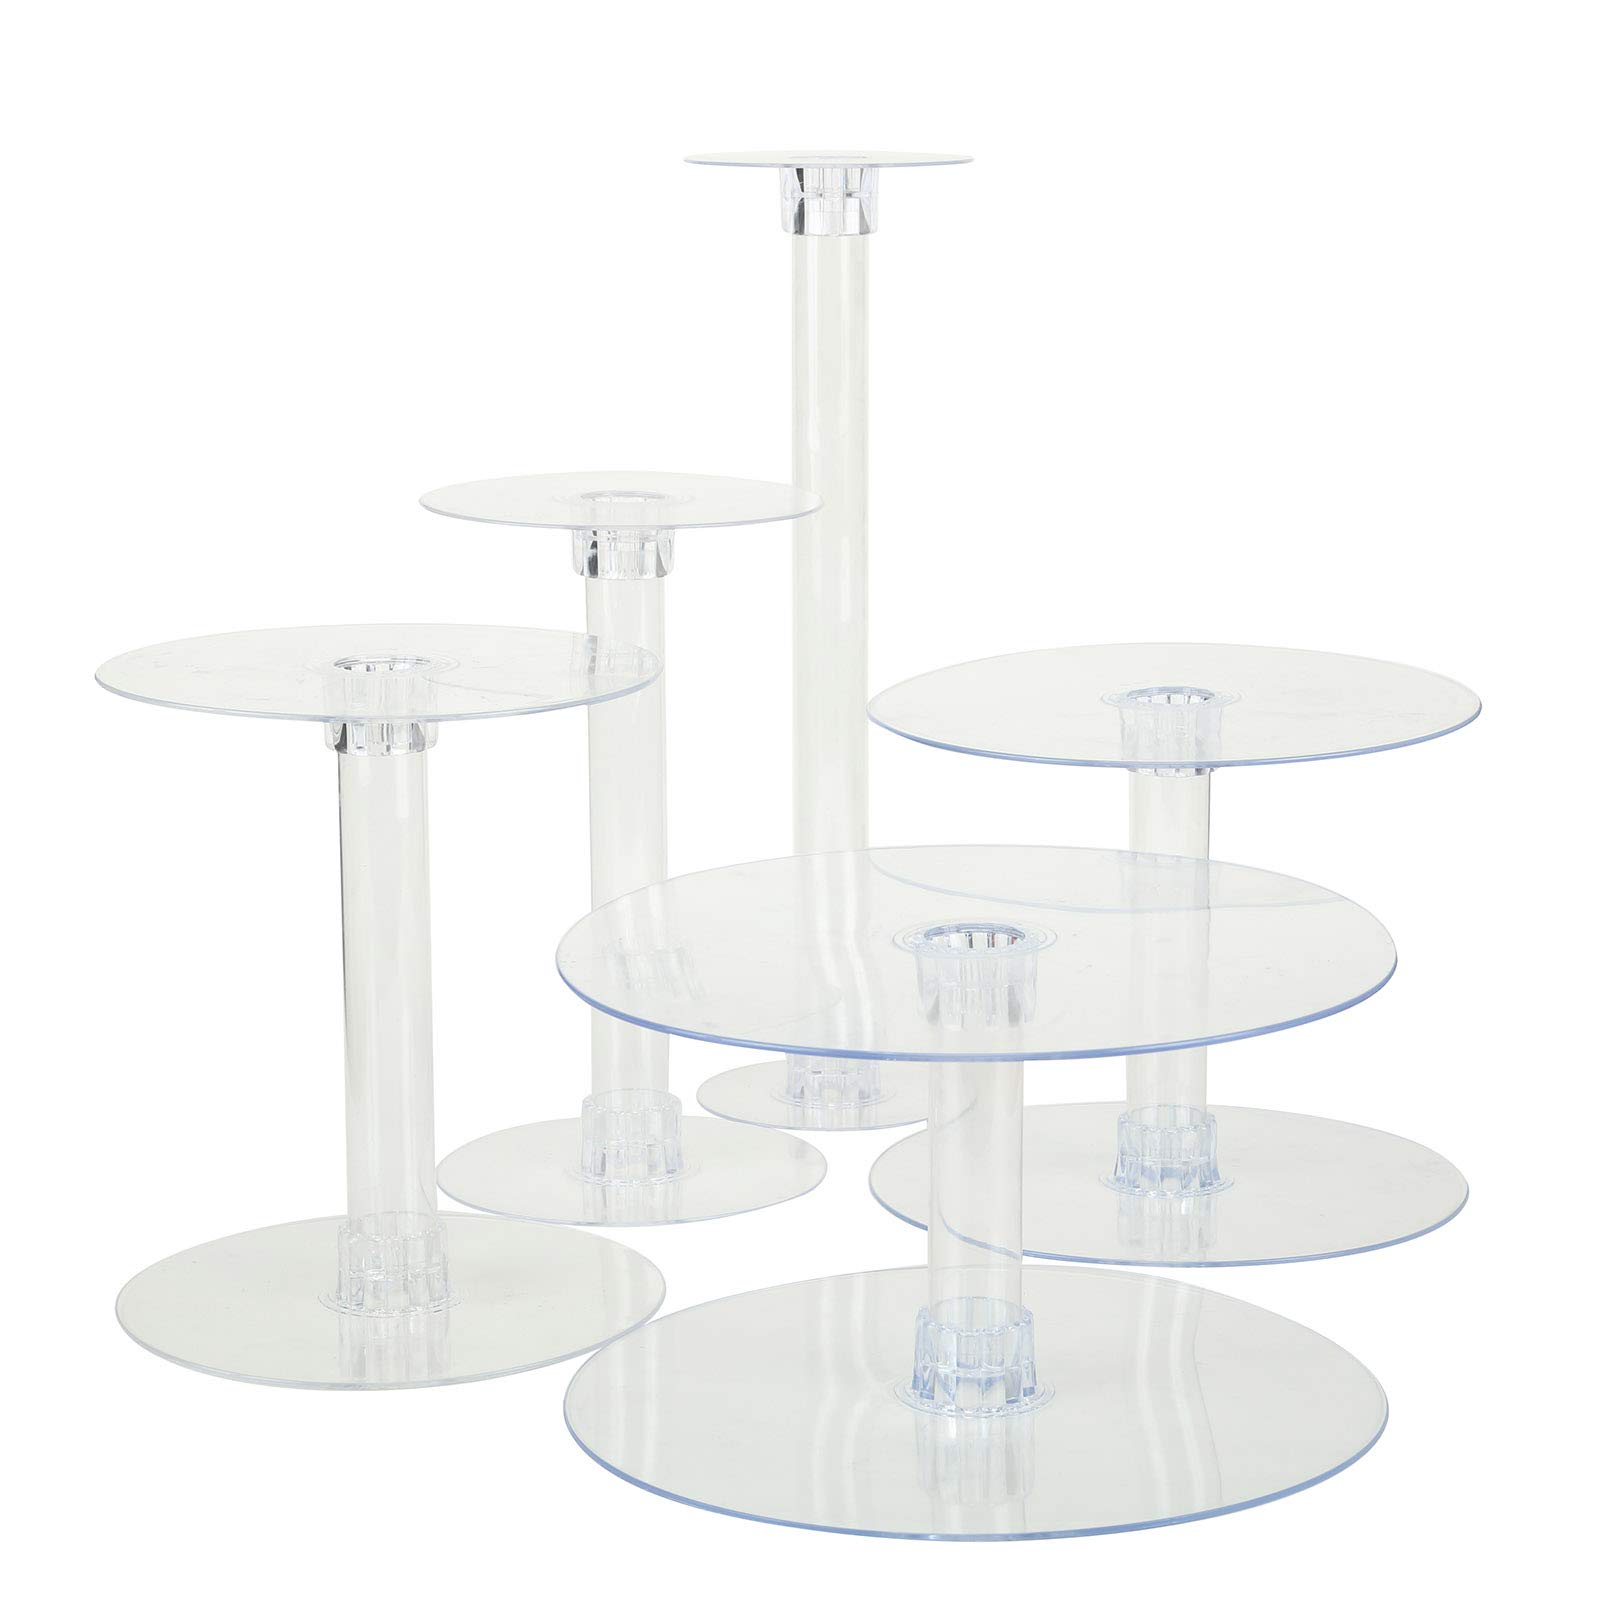 BalsaCircle 5 Tiers Clear Round Crystal Acrylic Cupcake Stand - Tiered Dessert Food Display Serving Tower Birthday Party Wedding